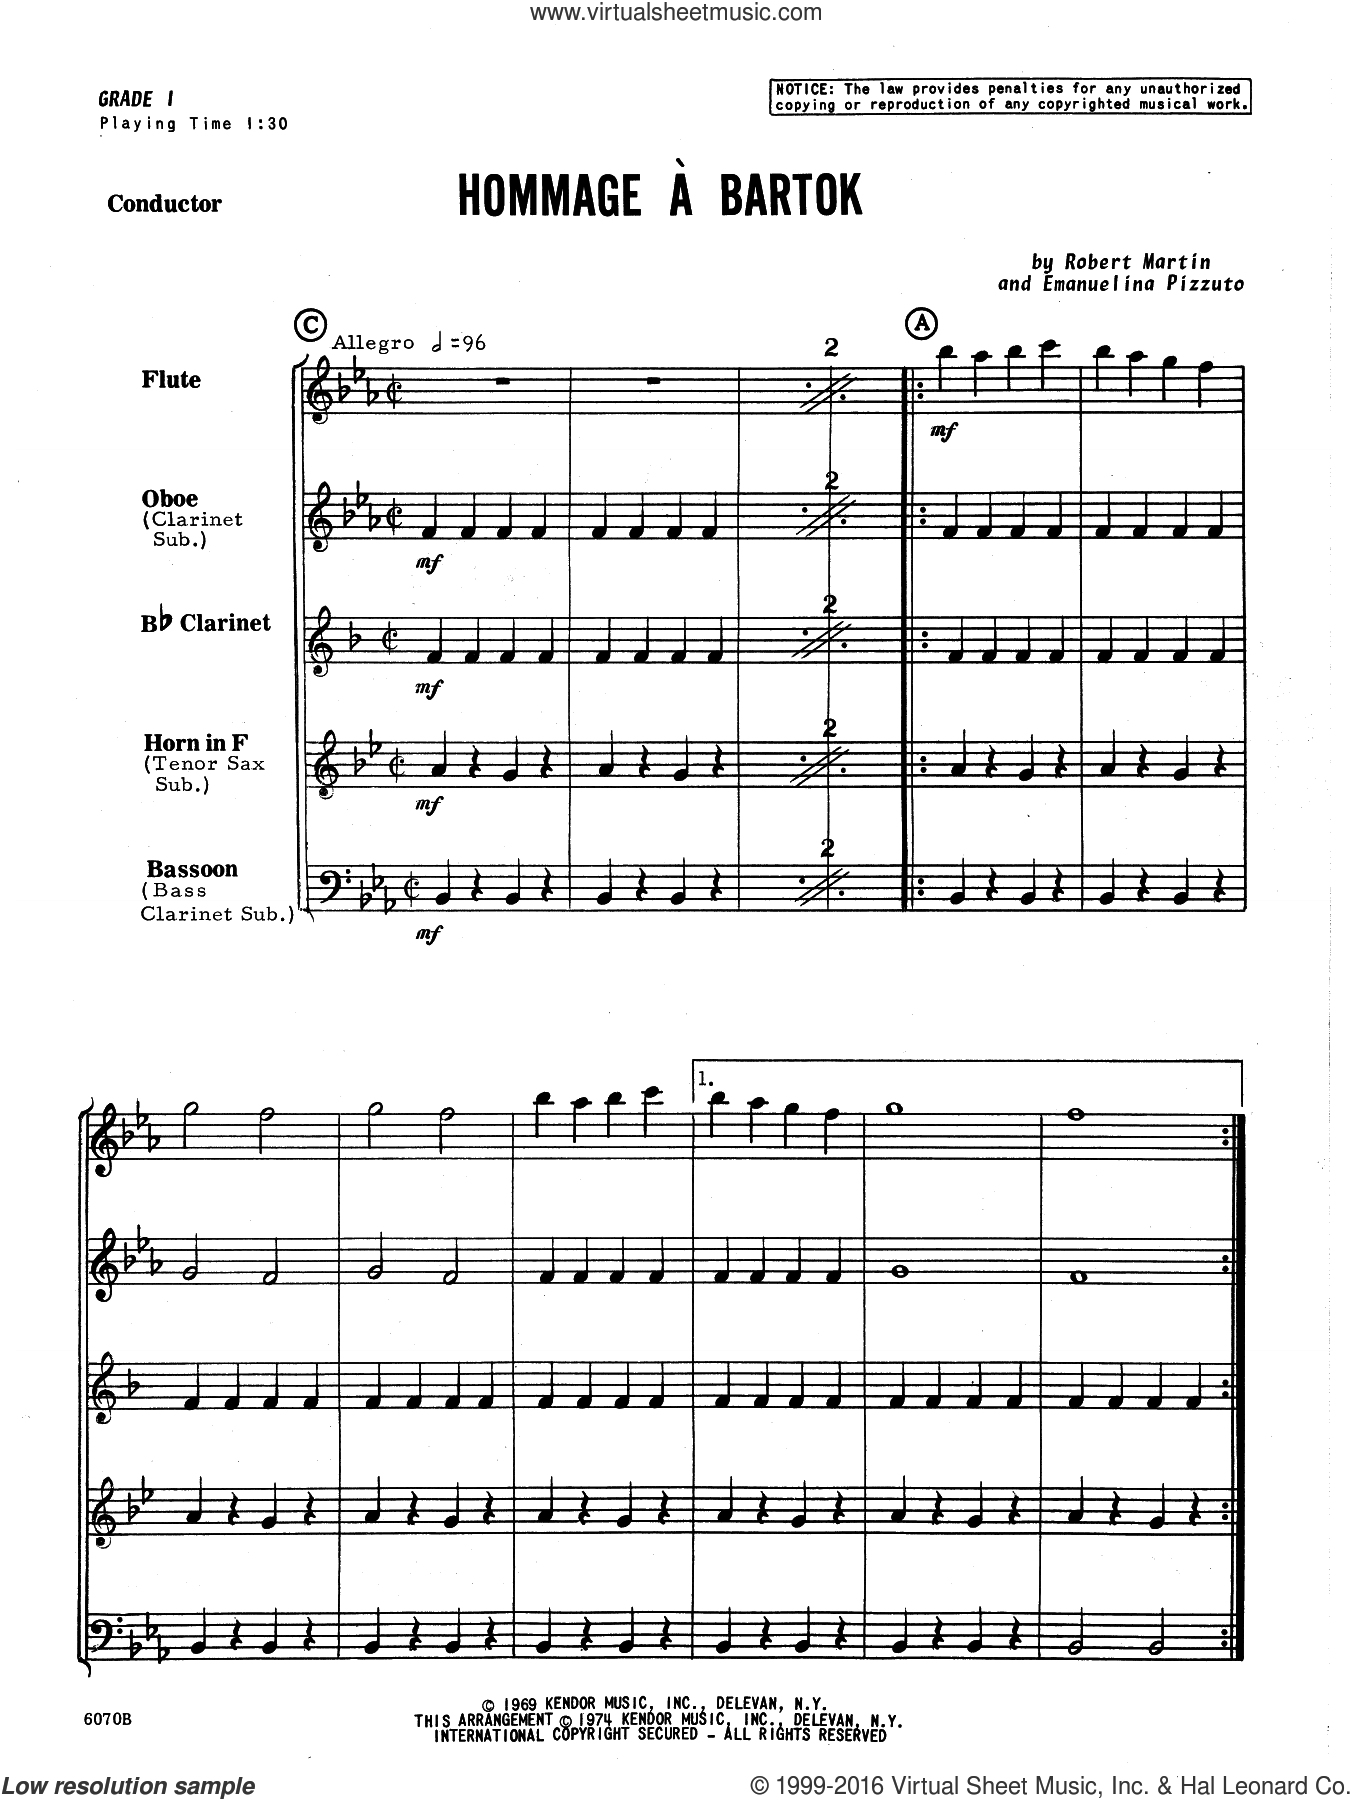 Hommage A Bartok (COMPLETE) sheet music for wind quintet by Martin. Score Image Preview.